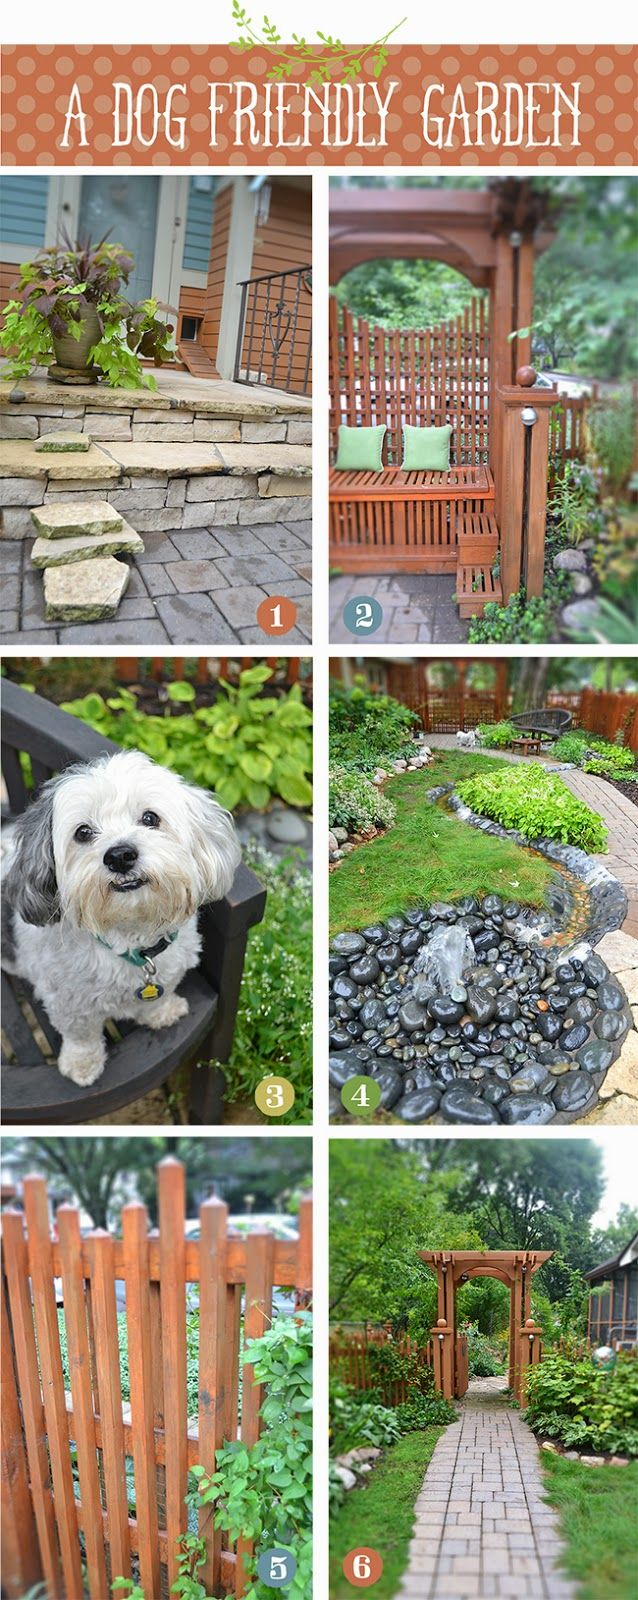 Lisa Orgler Design: A DOG FRIENDLY GARDEN